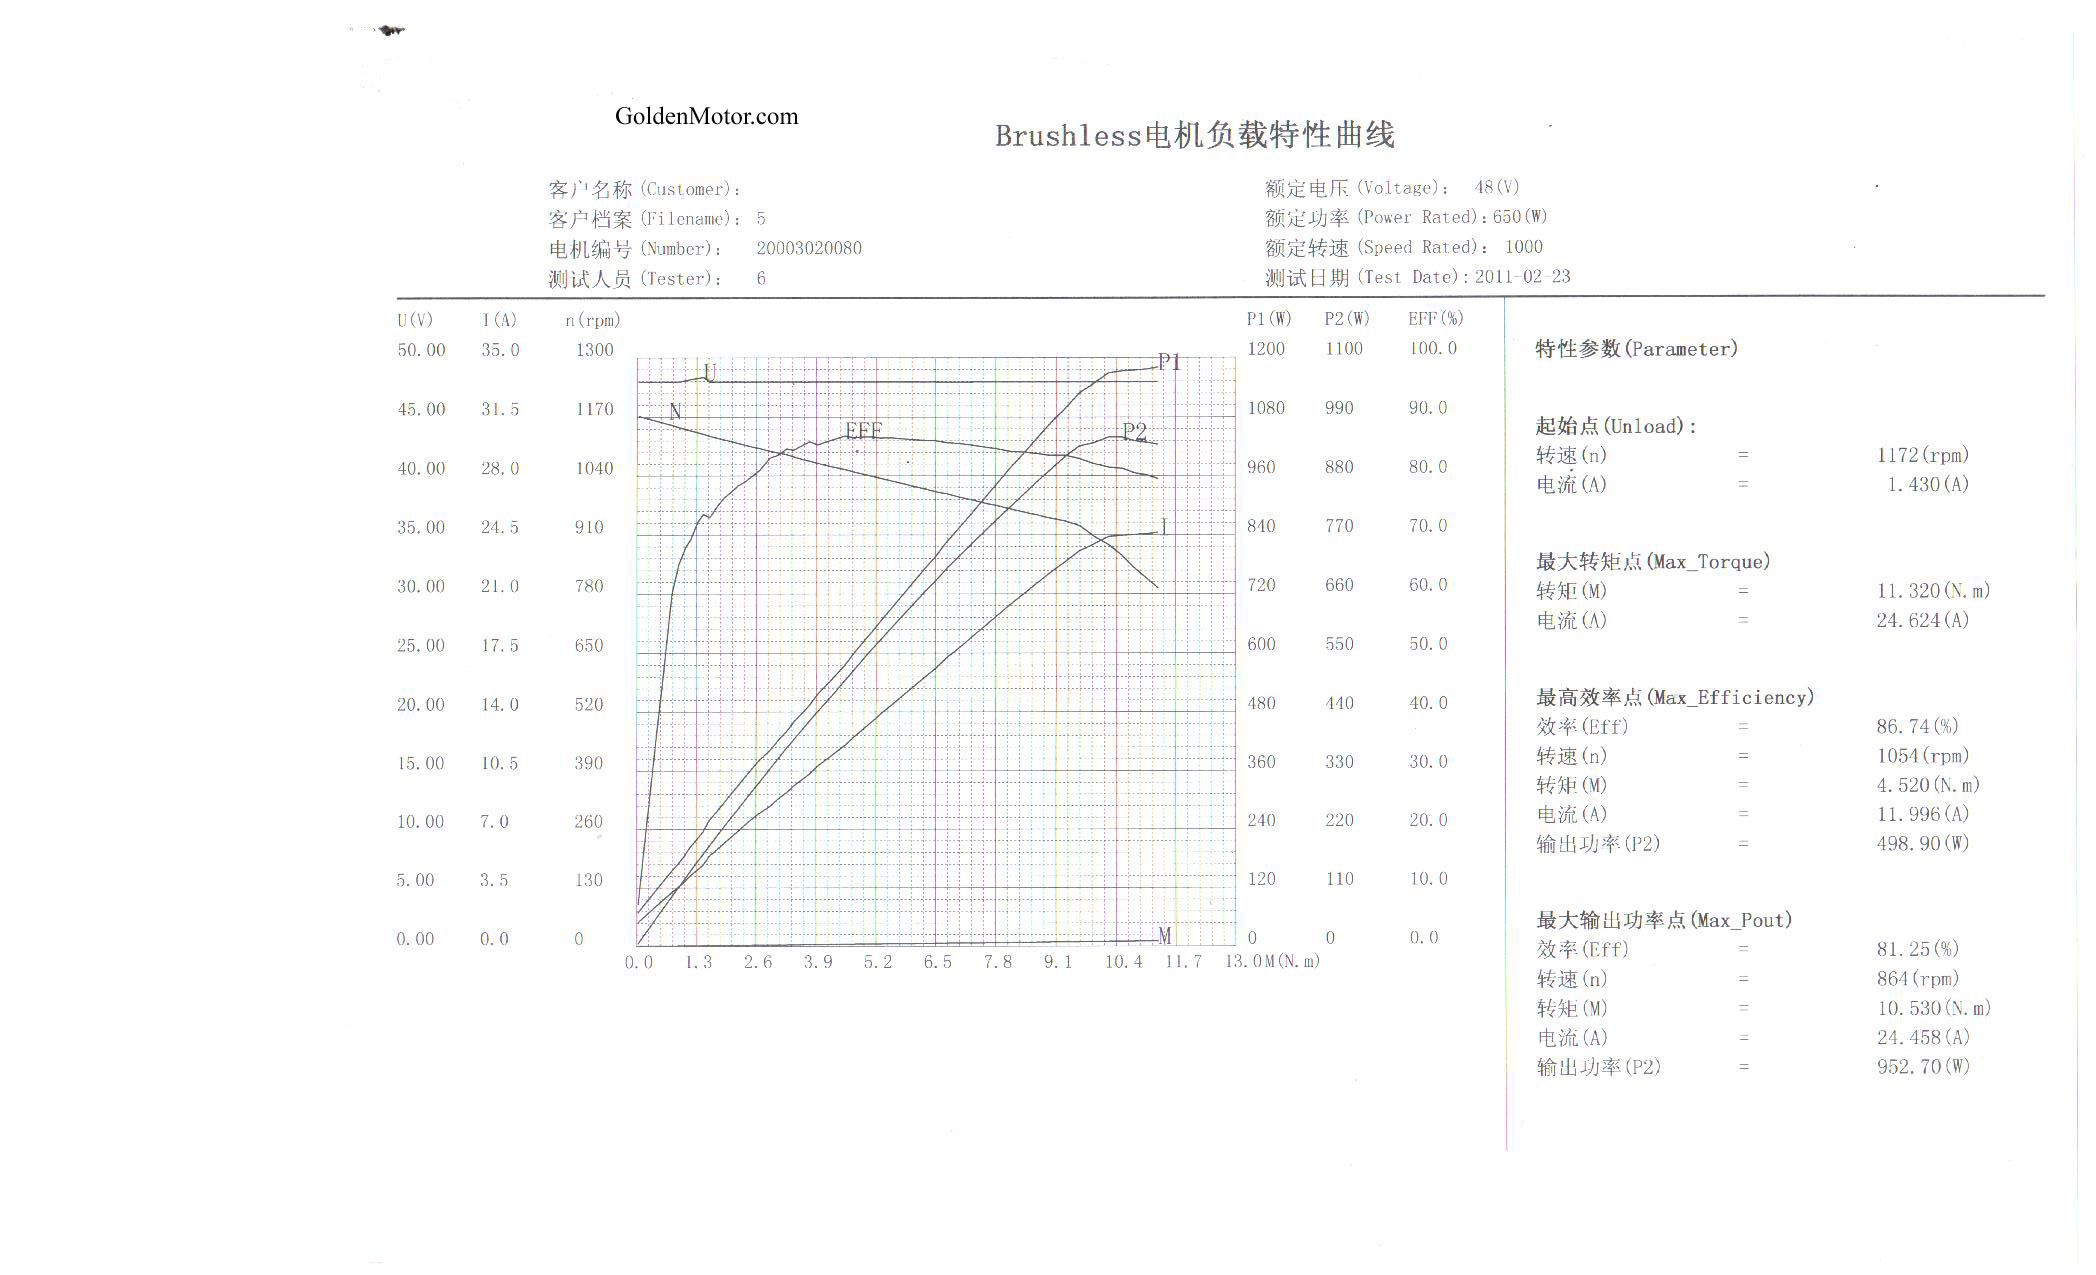 electric light wiring diagram kenmore brushless motors, bldc motor, sensorless motor controllers, foc controller, field ...